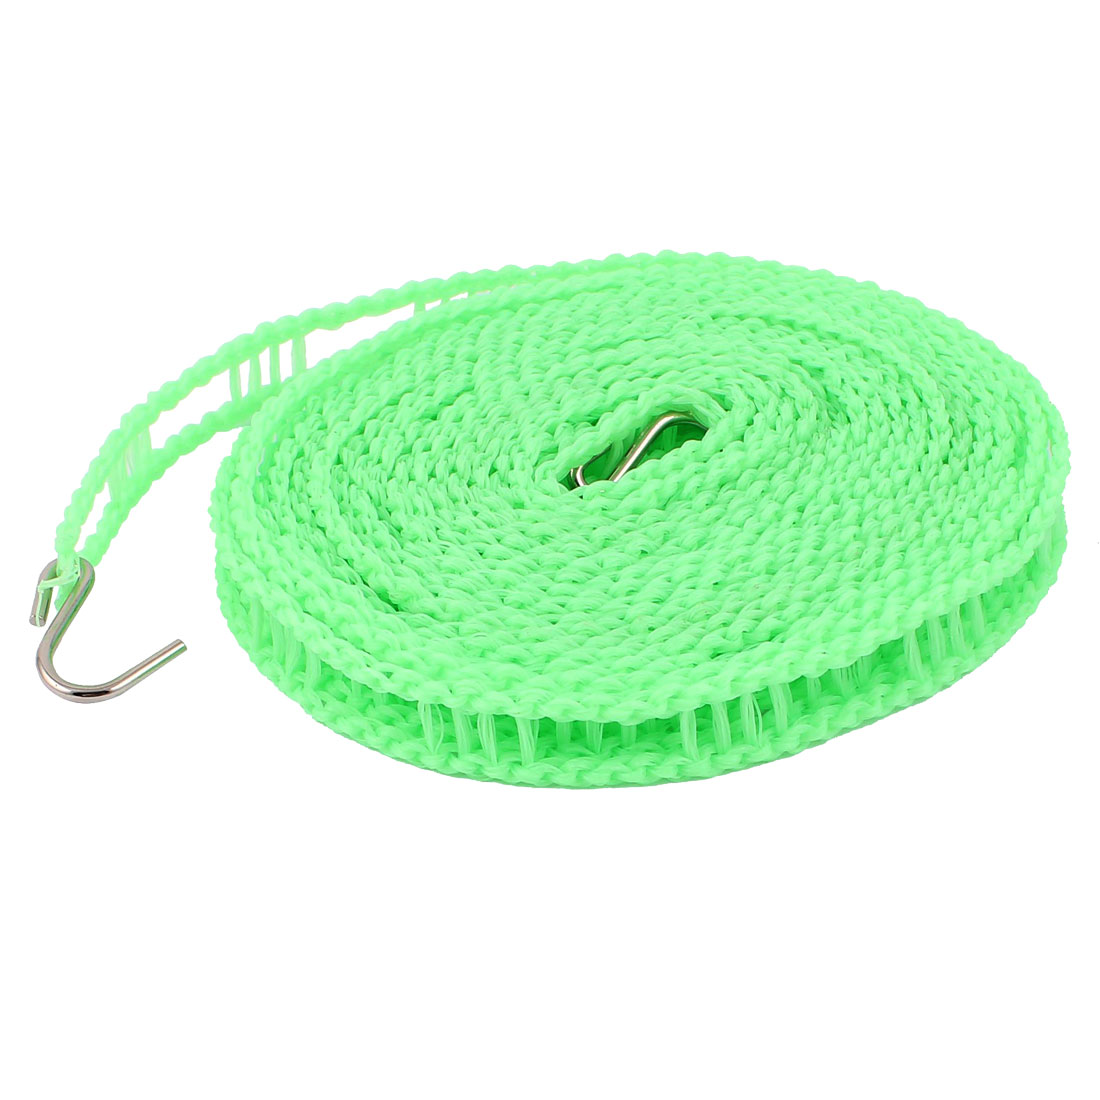 Outdoor Travel Clothesline Laundry Non-slip Washing Clothes Line Rope Green